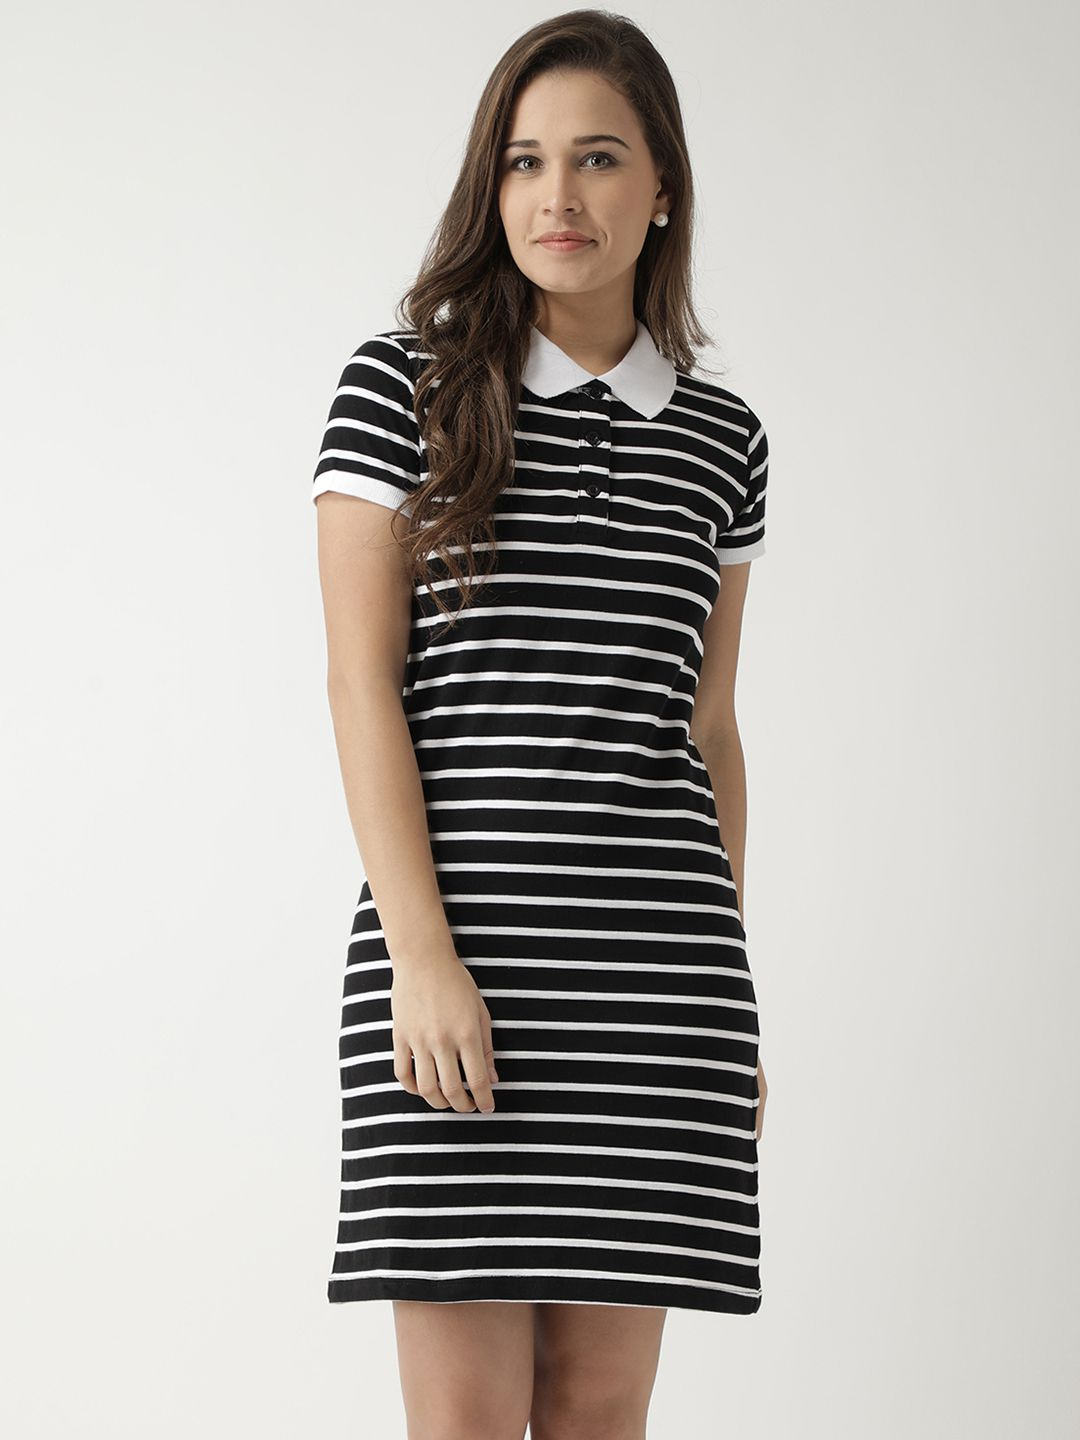 f3d5aa3113 Club York Cotton Black Sheath Dress - Buy Club York Cotton Black Sheath Dress  Online at Best Prices in India on Snapdeal